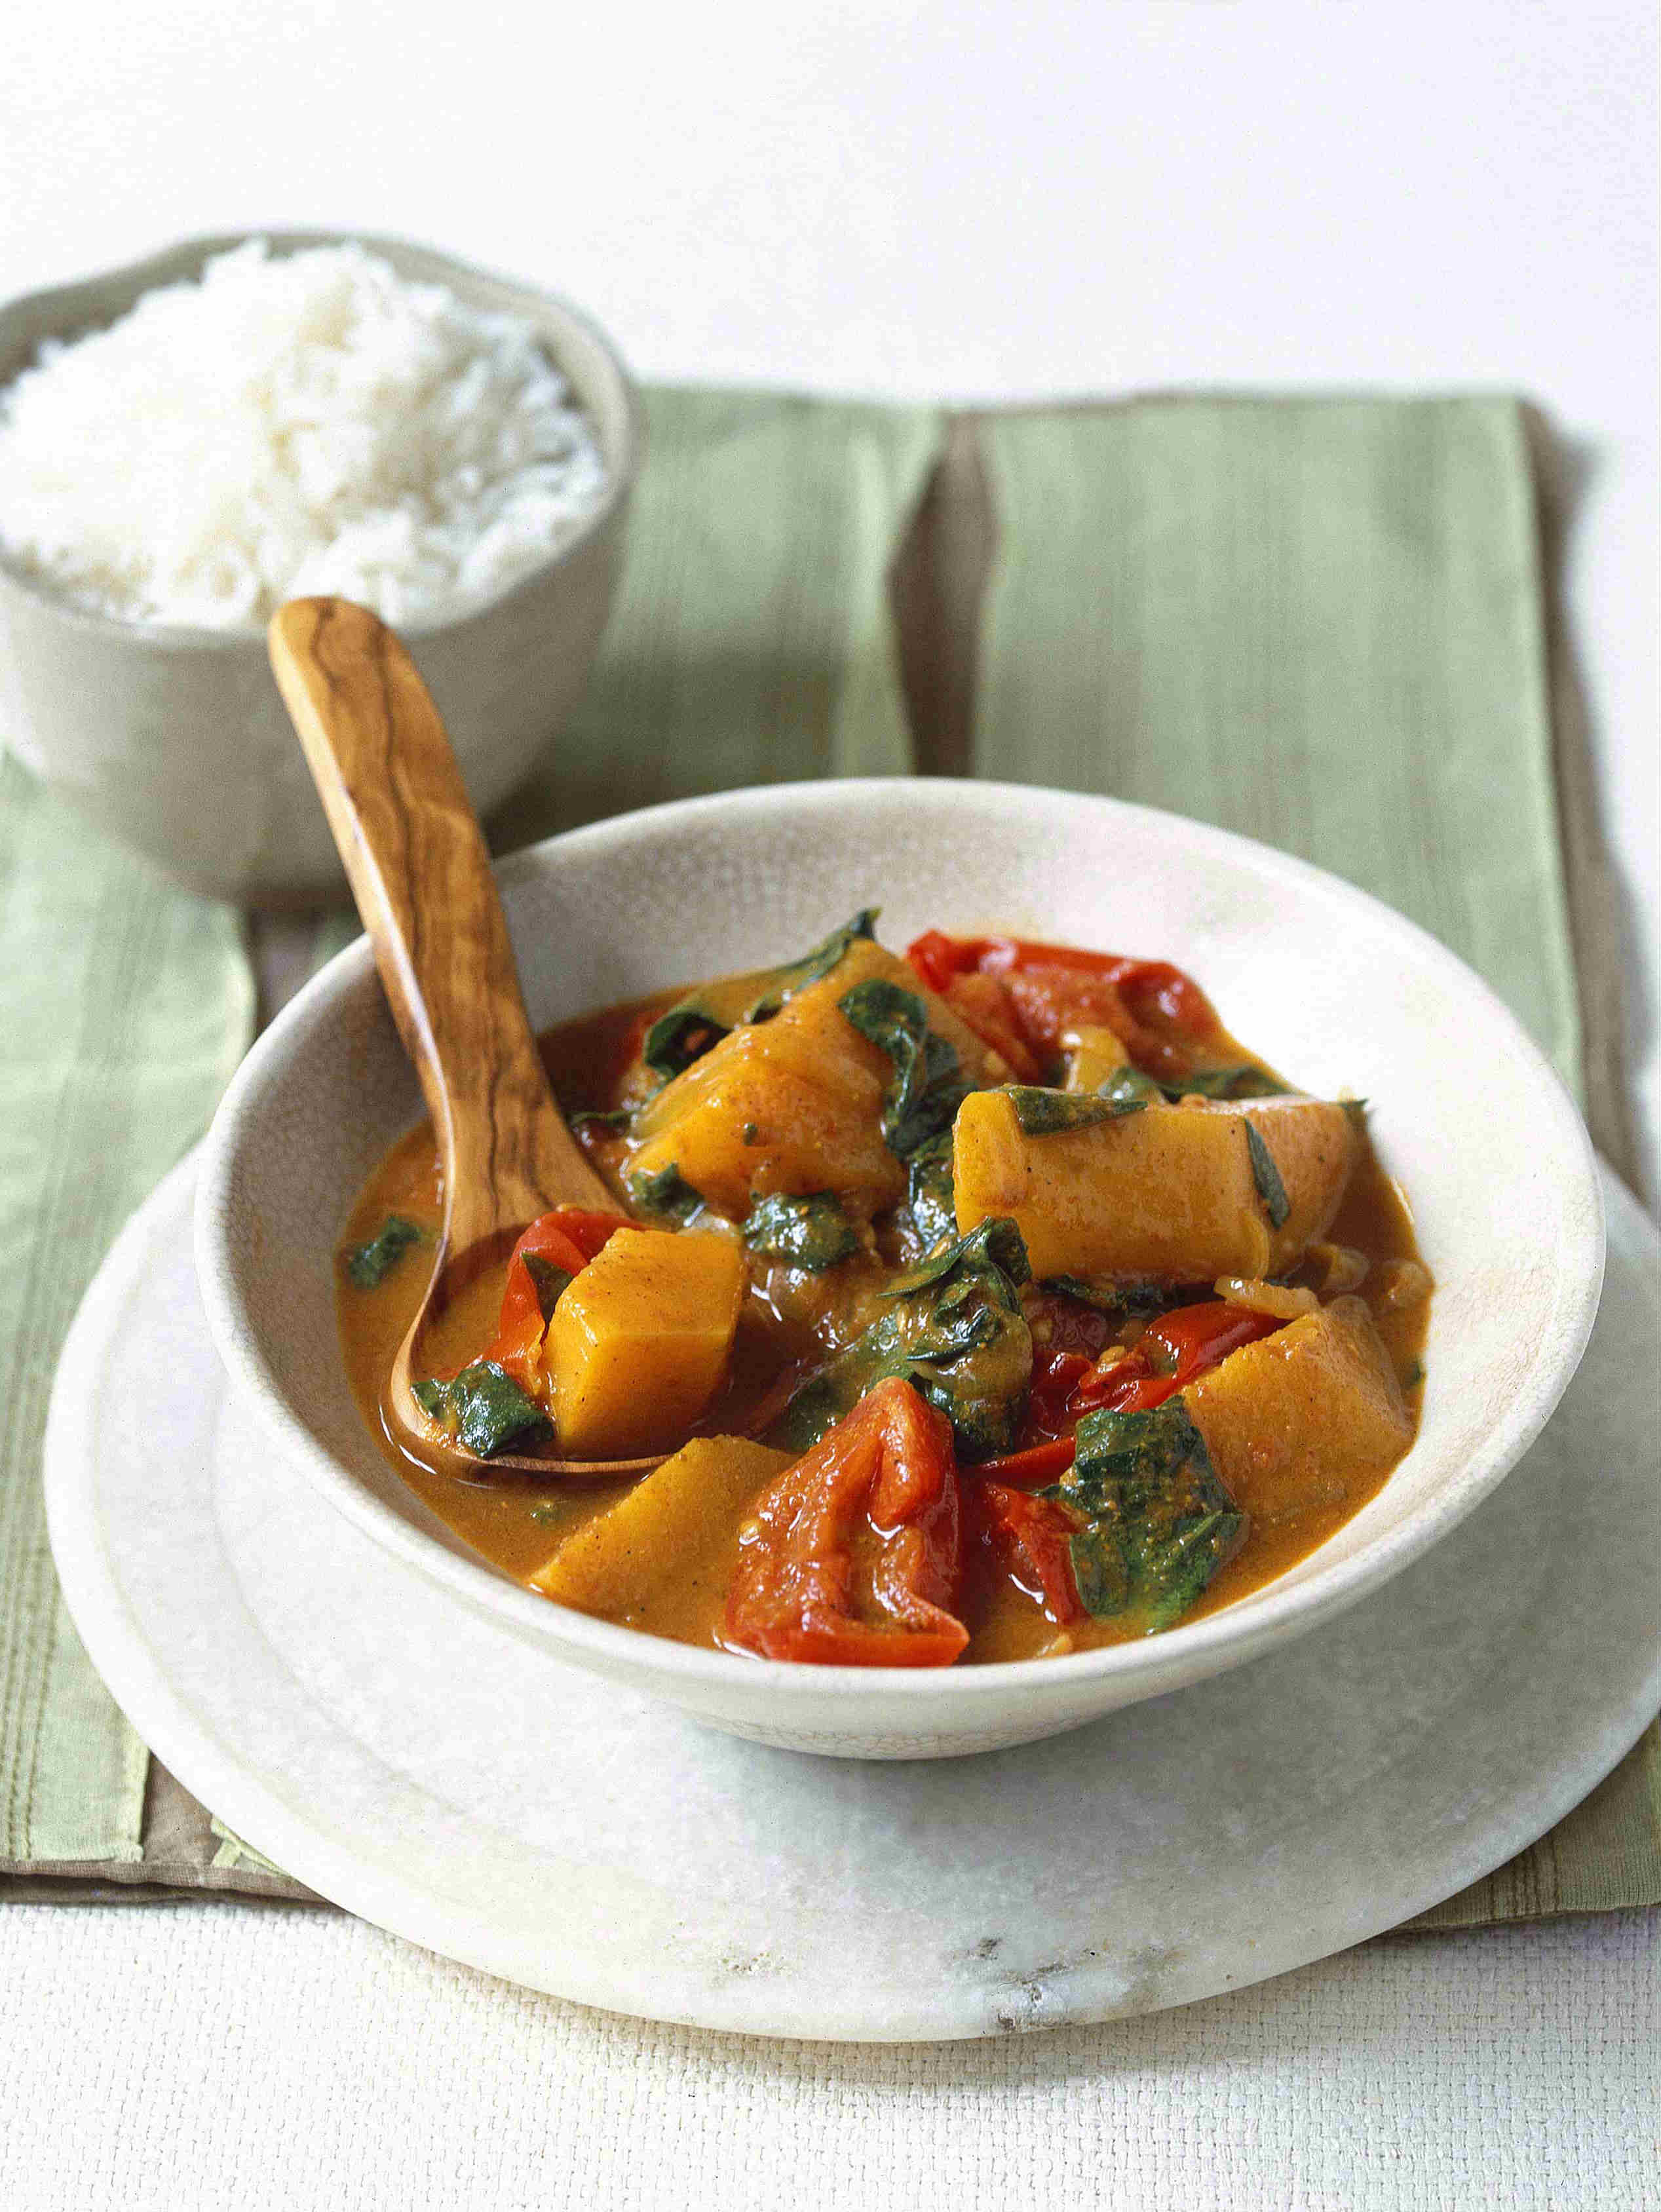 Tomato, squash and spinach curry